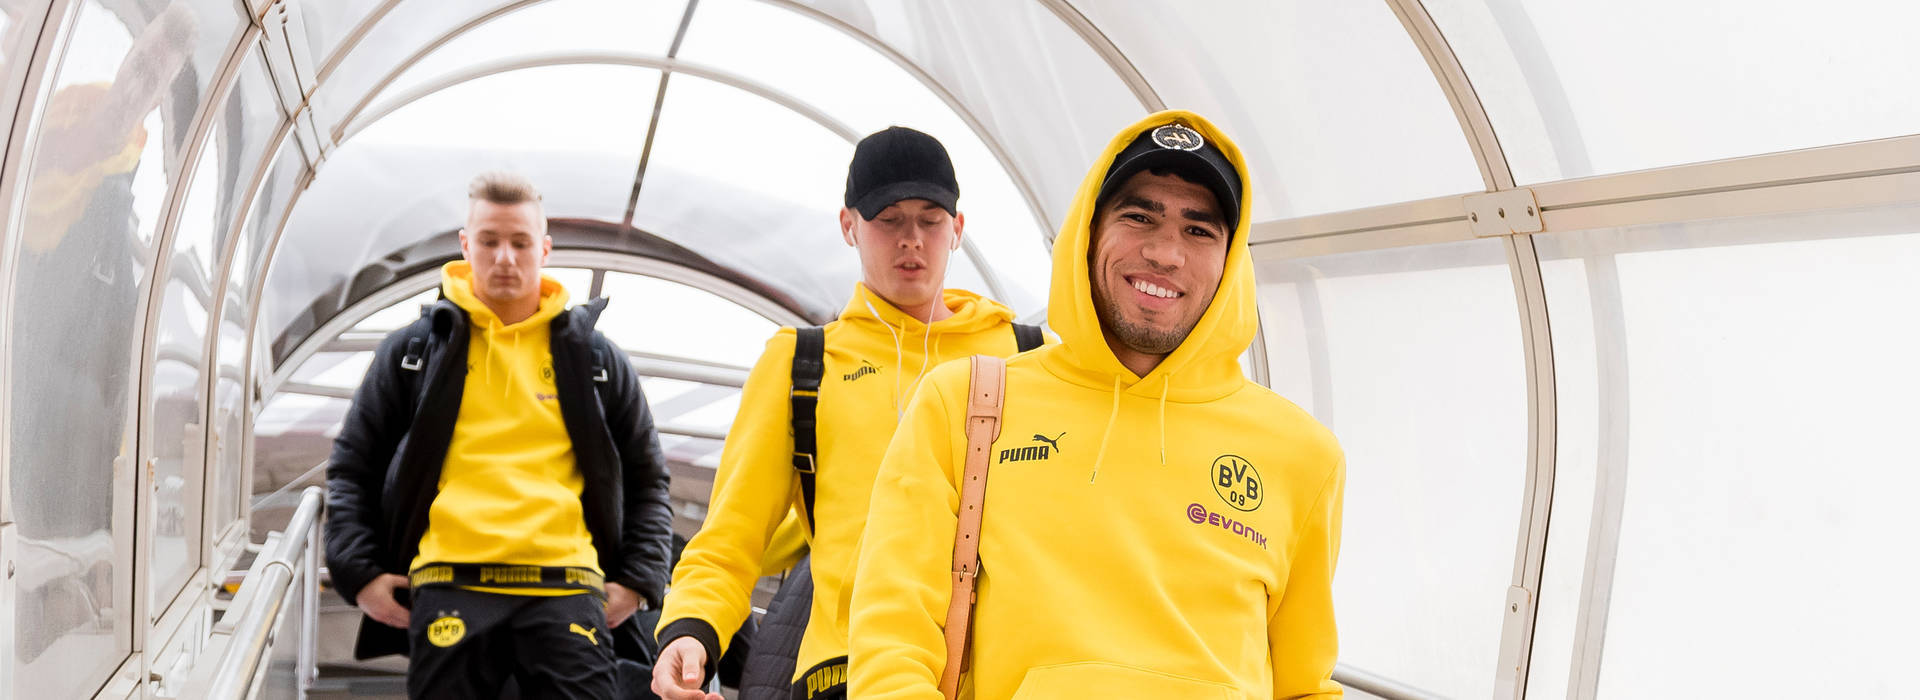 Hakimi runs riot as BVB beat Holstein Kiel 7-4